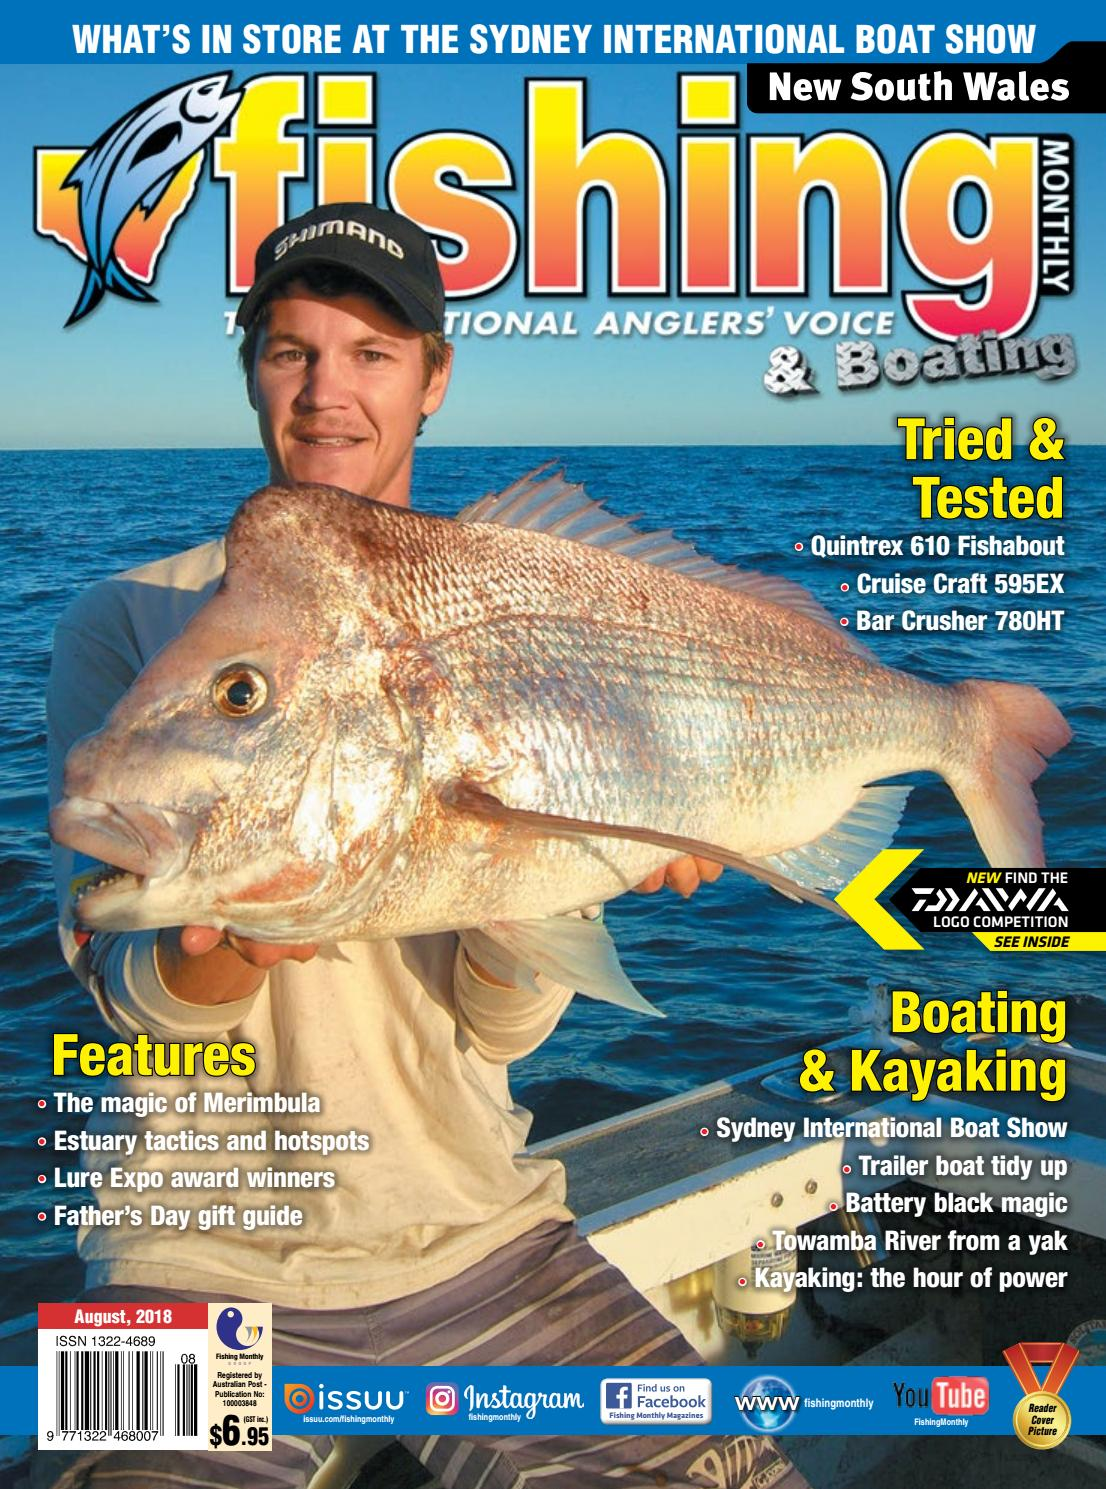 Nsw Fishing Monthly August 2018 By Issuu Mastercraft Seat Heater Wiring Diagram